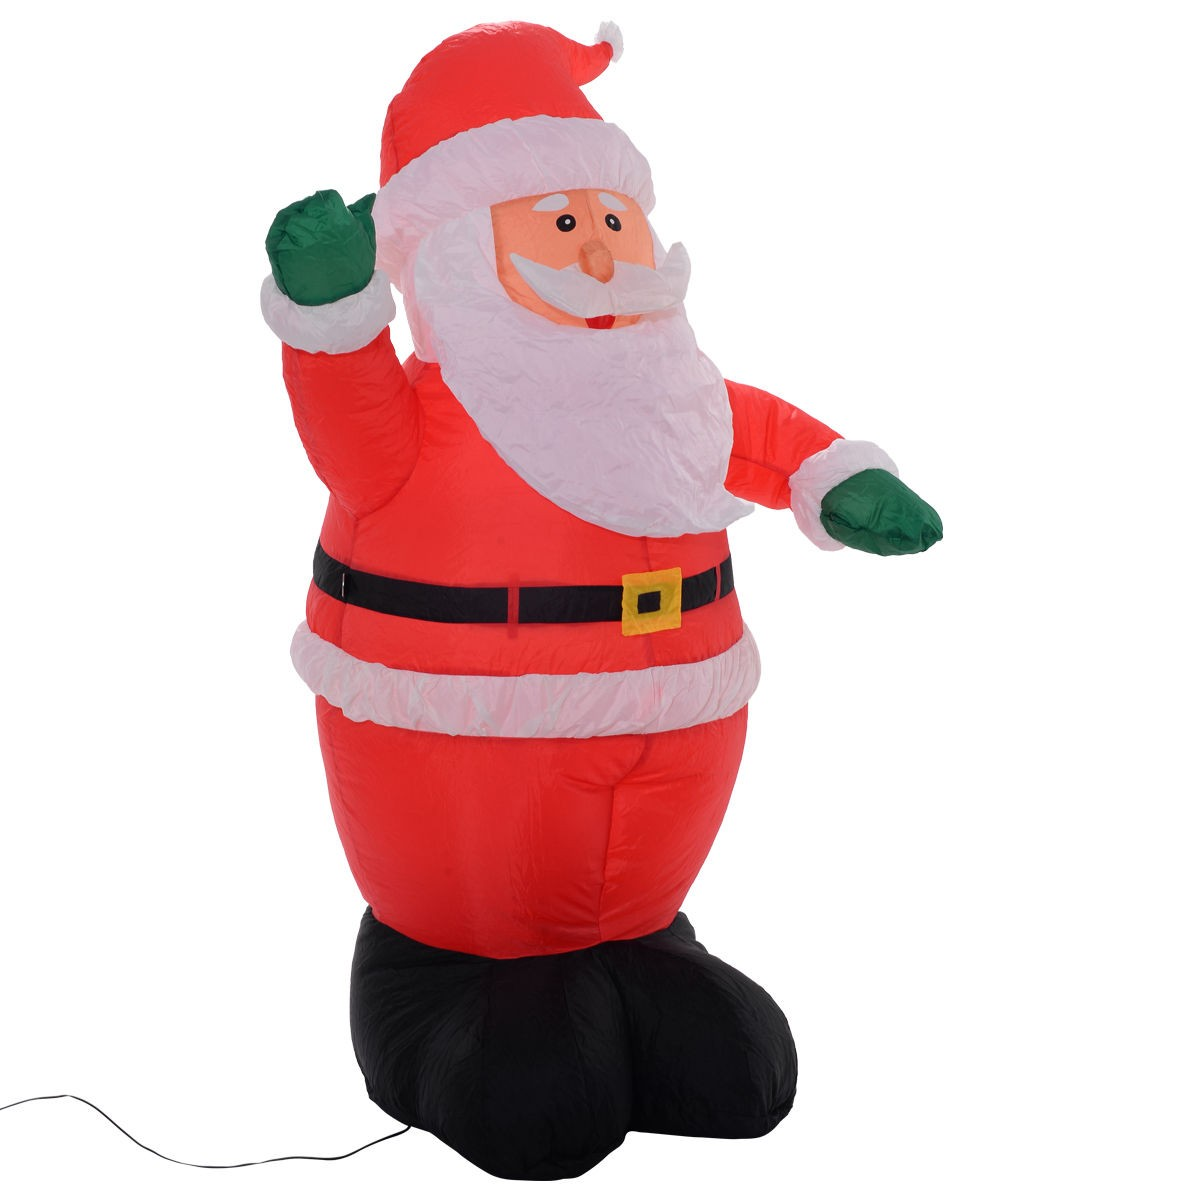 Santa Claus Lawn Decorations: Outdoor 5 Ft Airblown Inflatable Christmas Xmas Santa